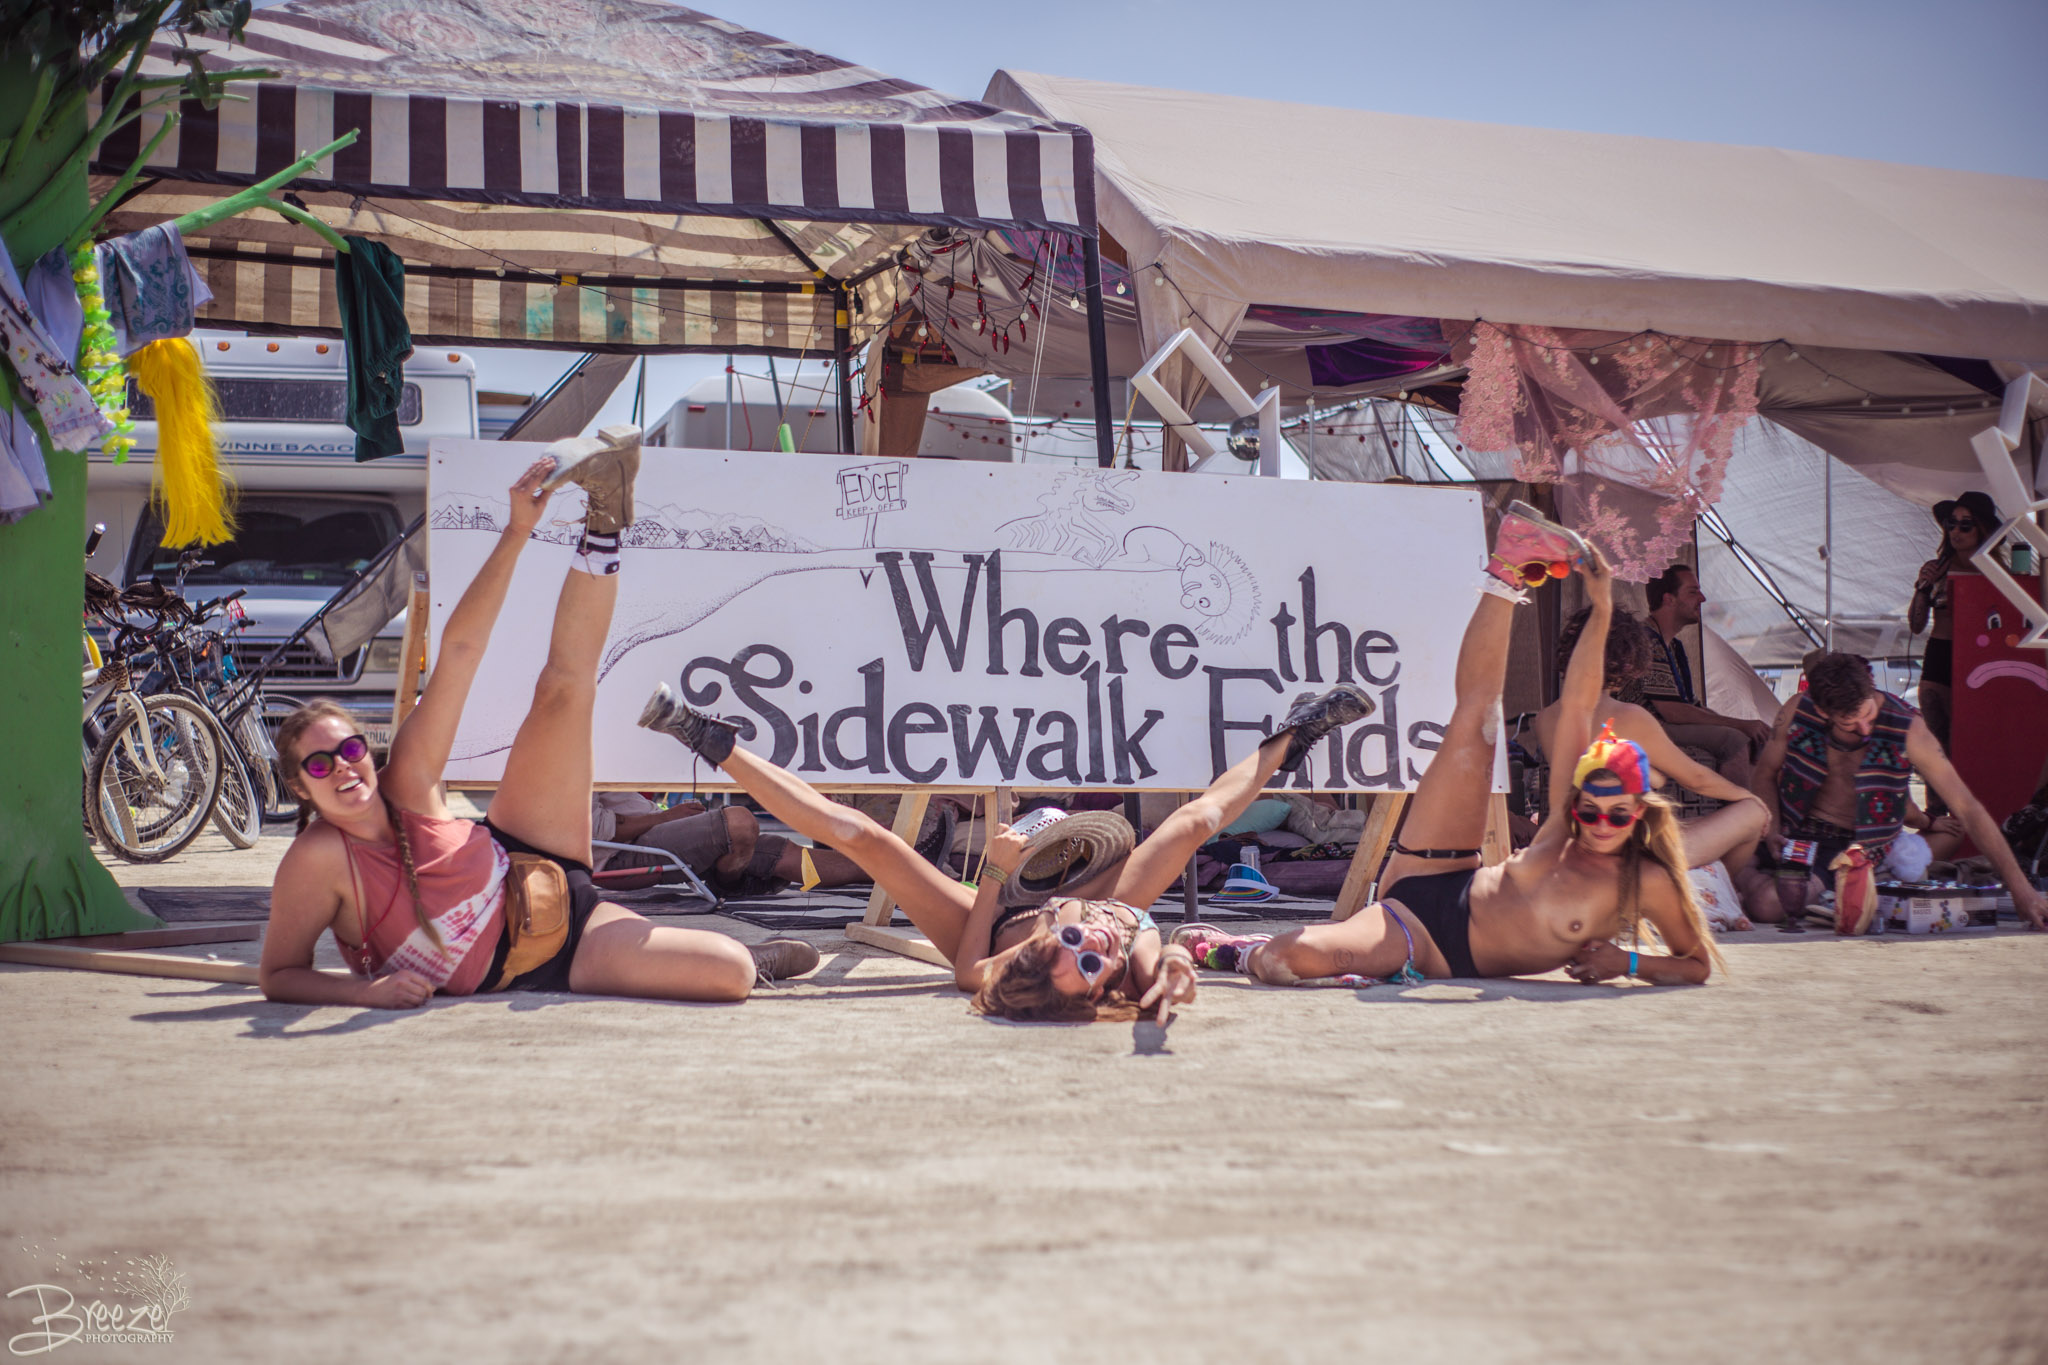 Brie'Ana Breeze Photography & Media - Burning Man 2018-3093.jpg